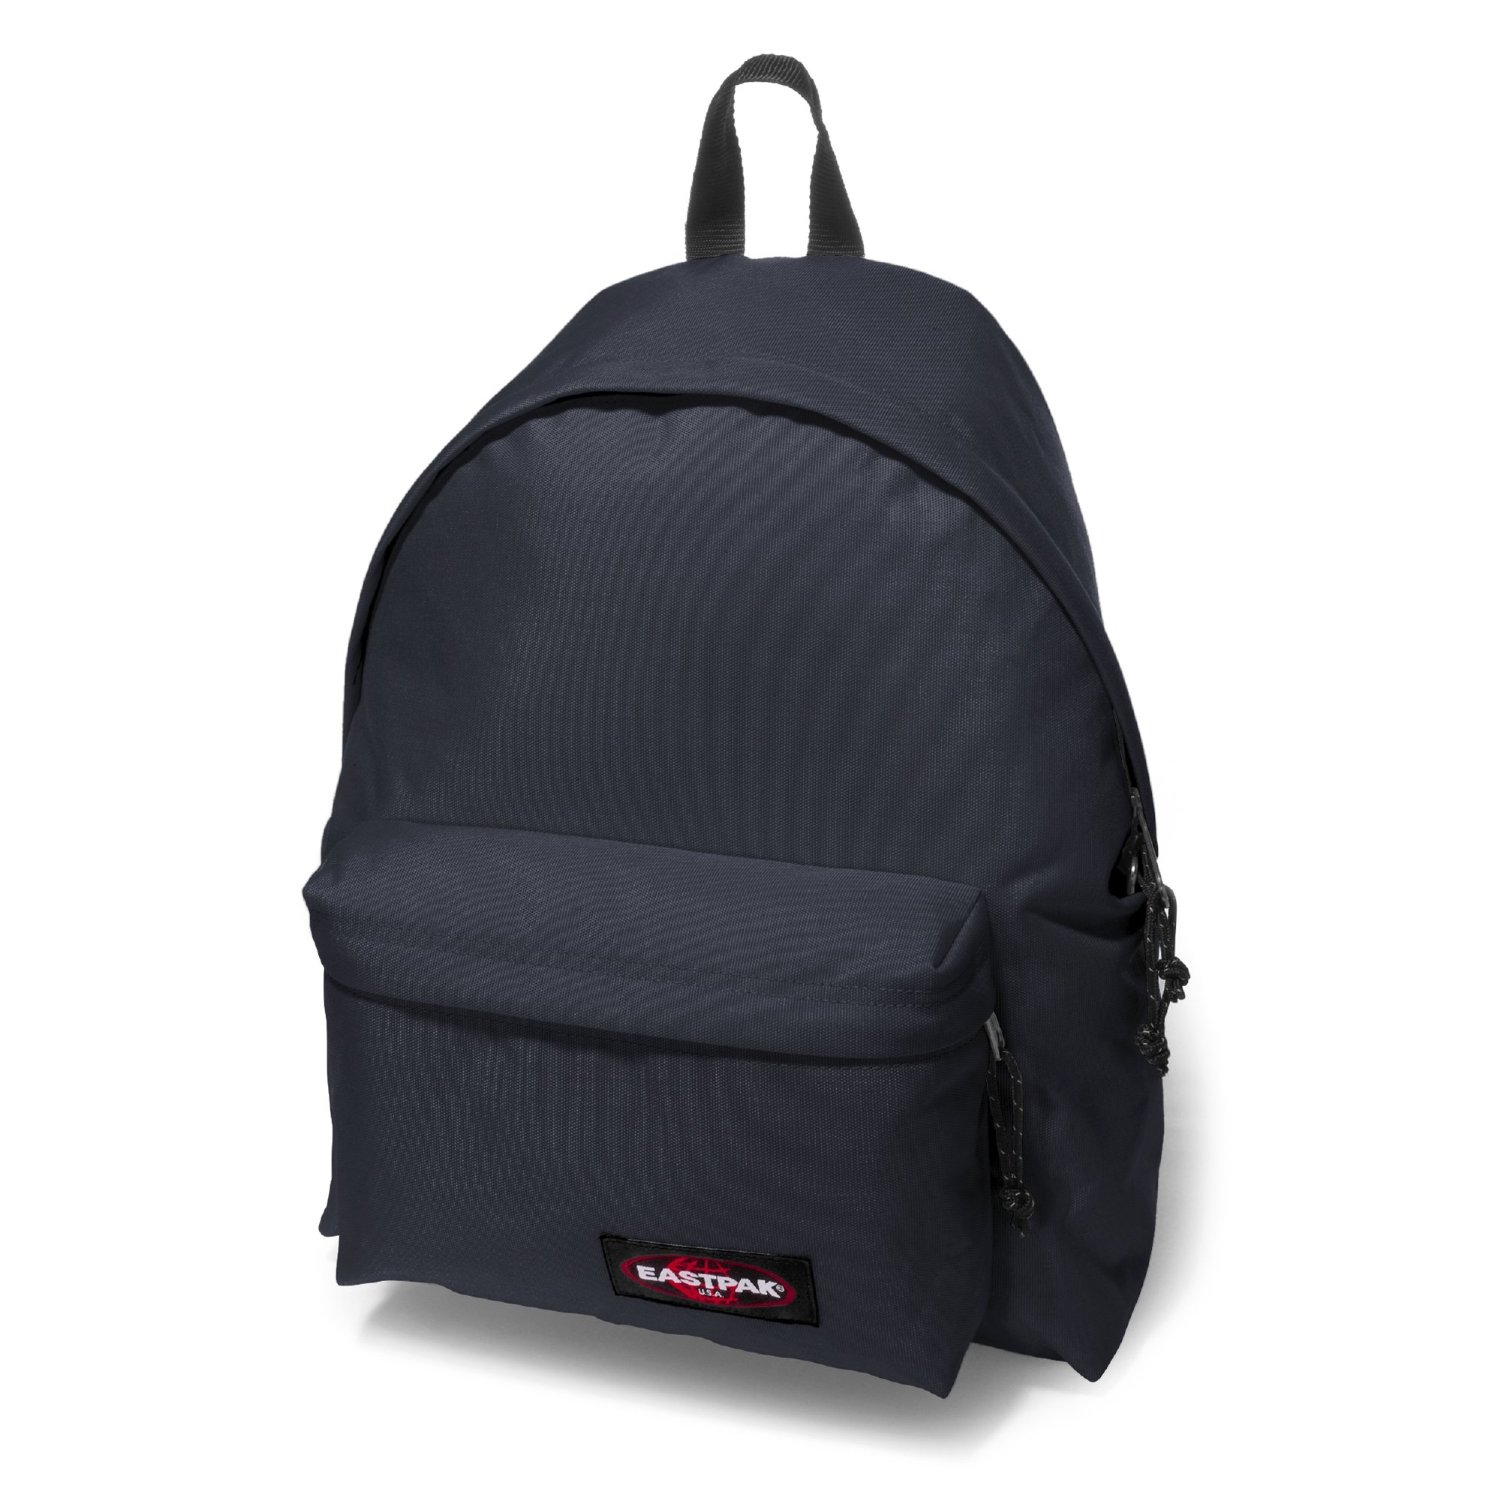 Eastpak Padded Pak'r EK620_154 Unisex School Backpack Bag 24L - Midnight Blue